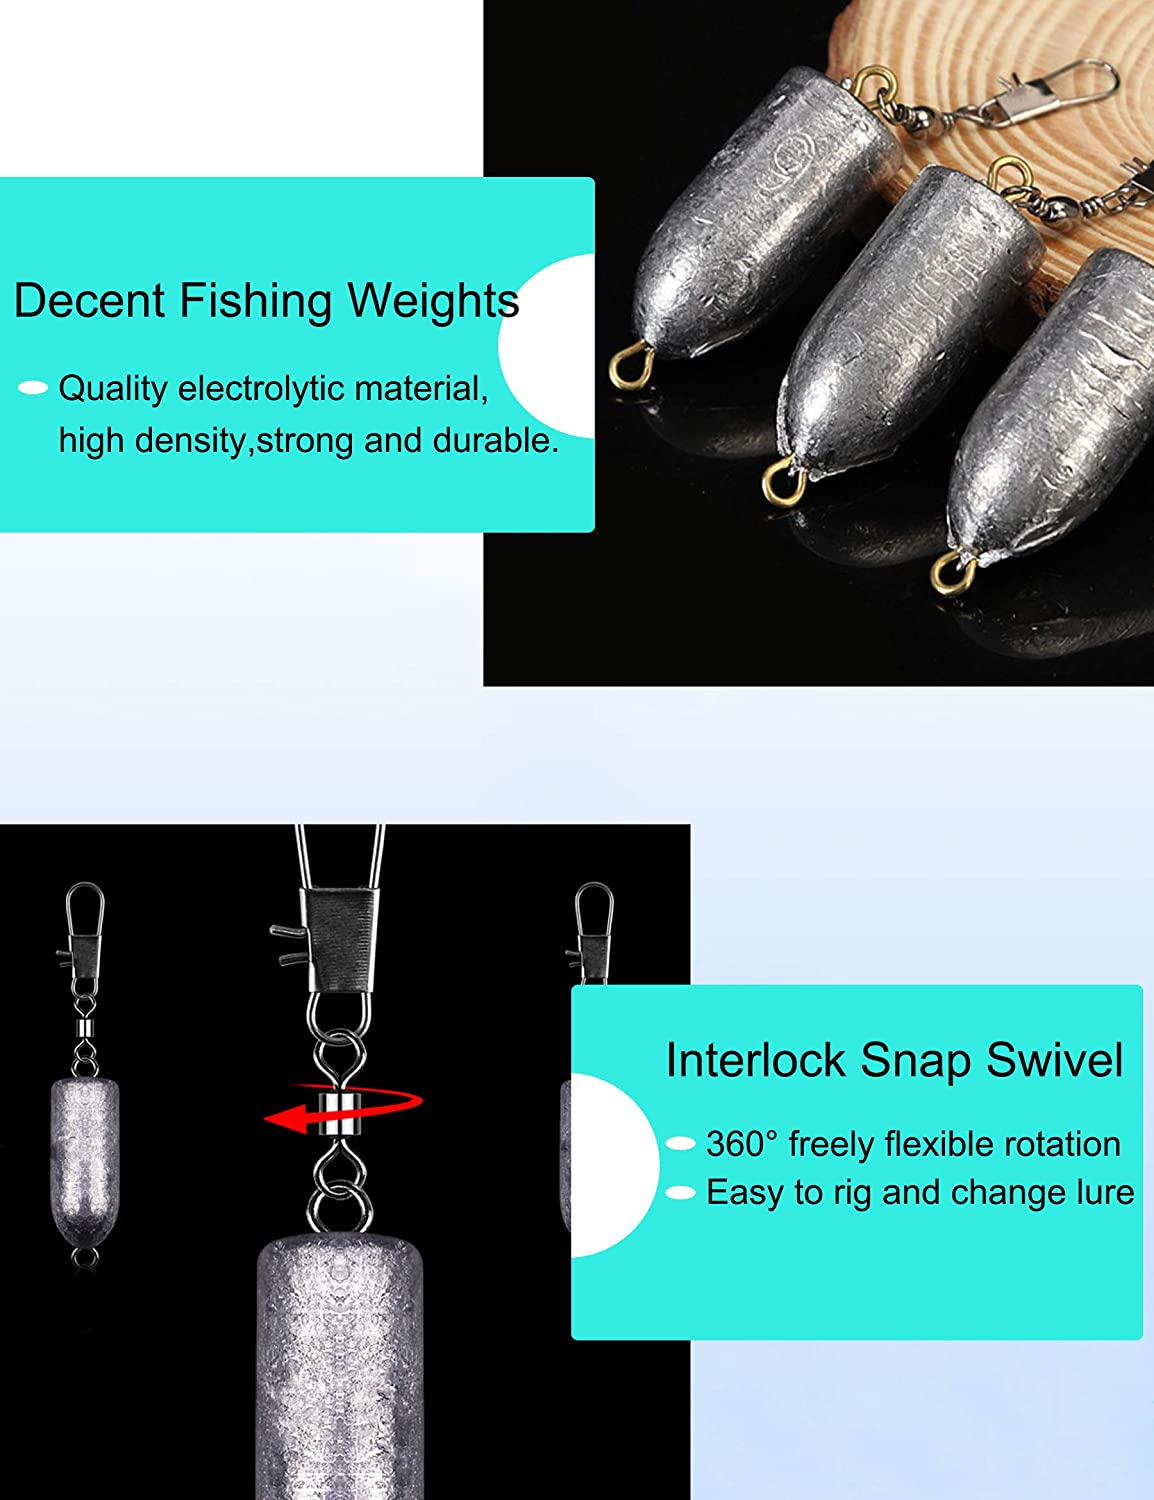 Avlcoaky Fishing Weights Sinkers with Interlock Swivel Snap Freshwater Saltwater Trolling Fishing Tackle